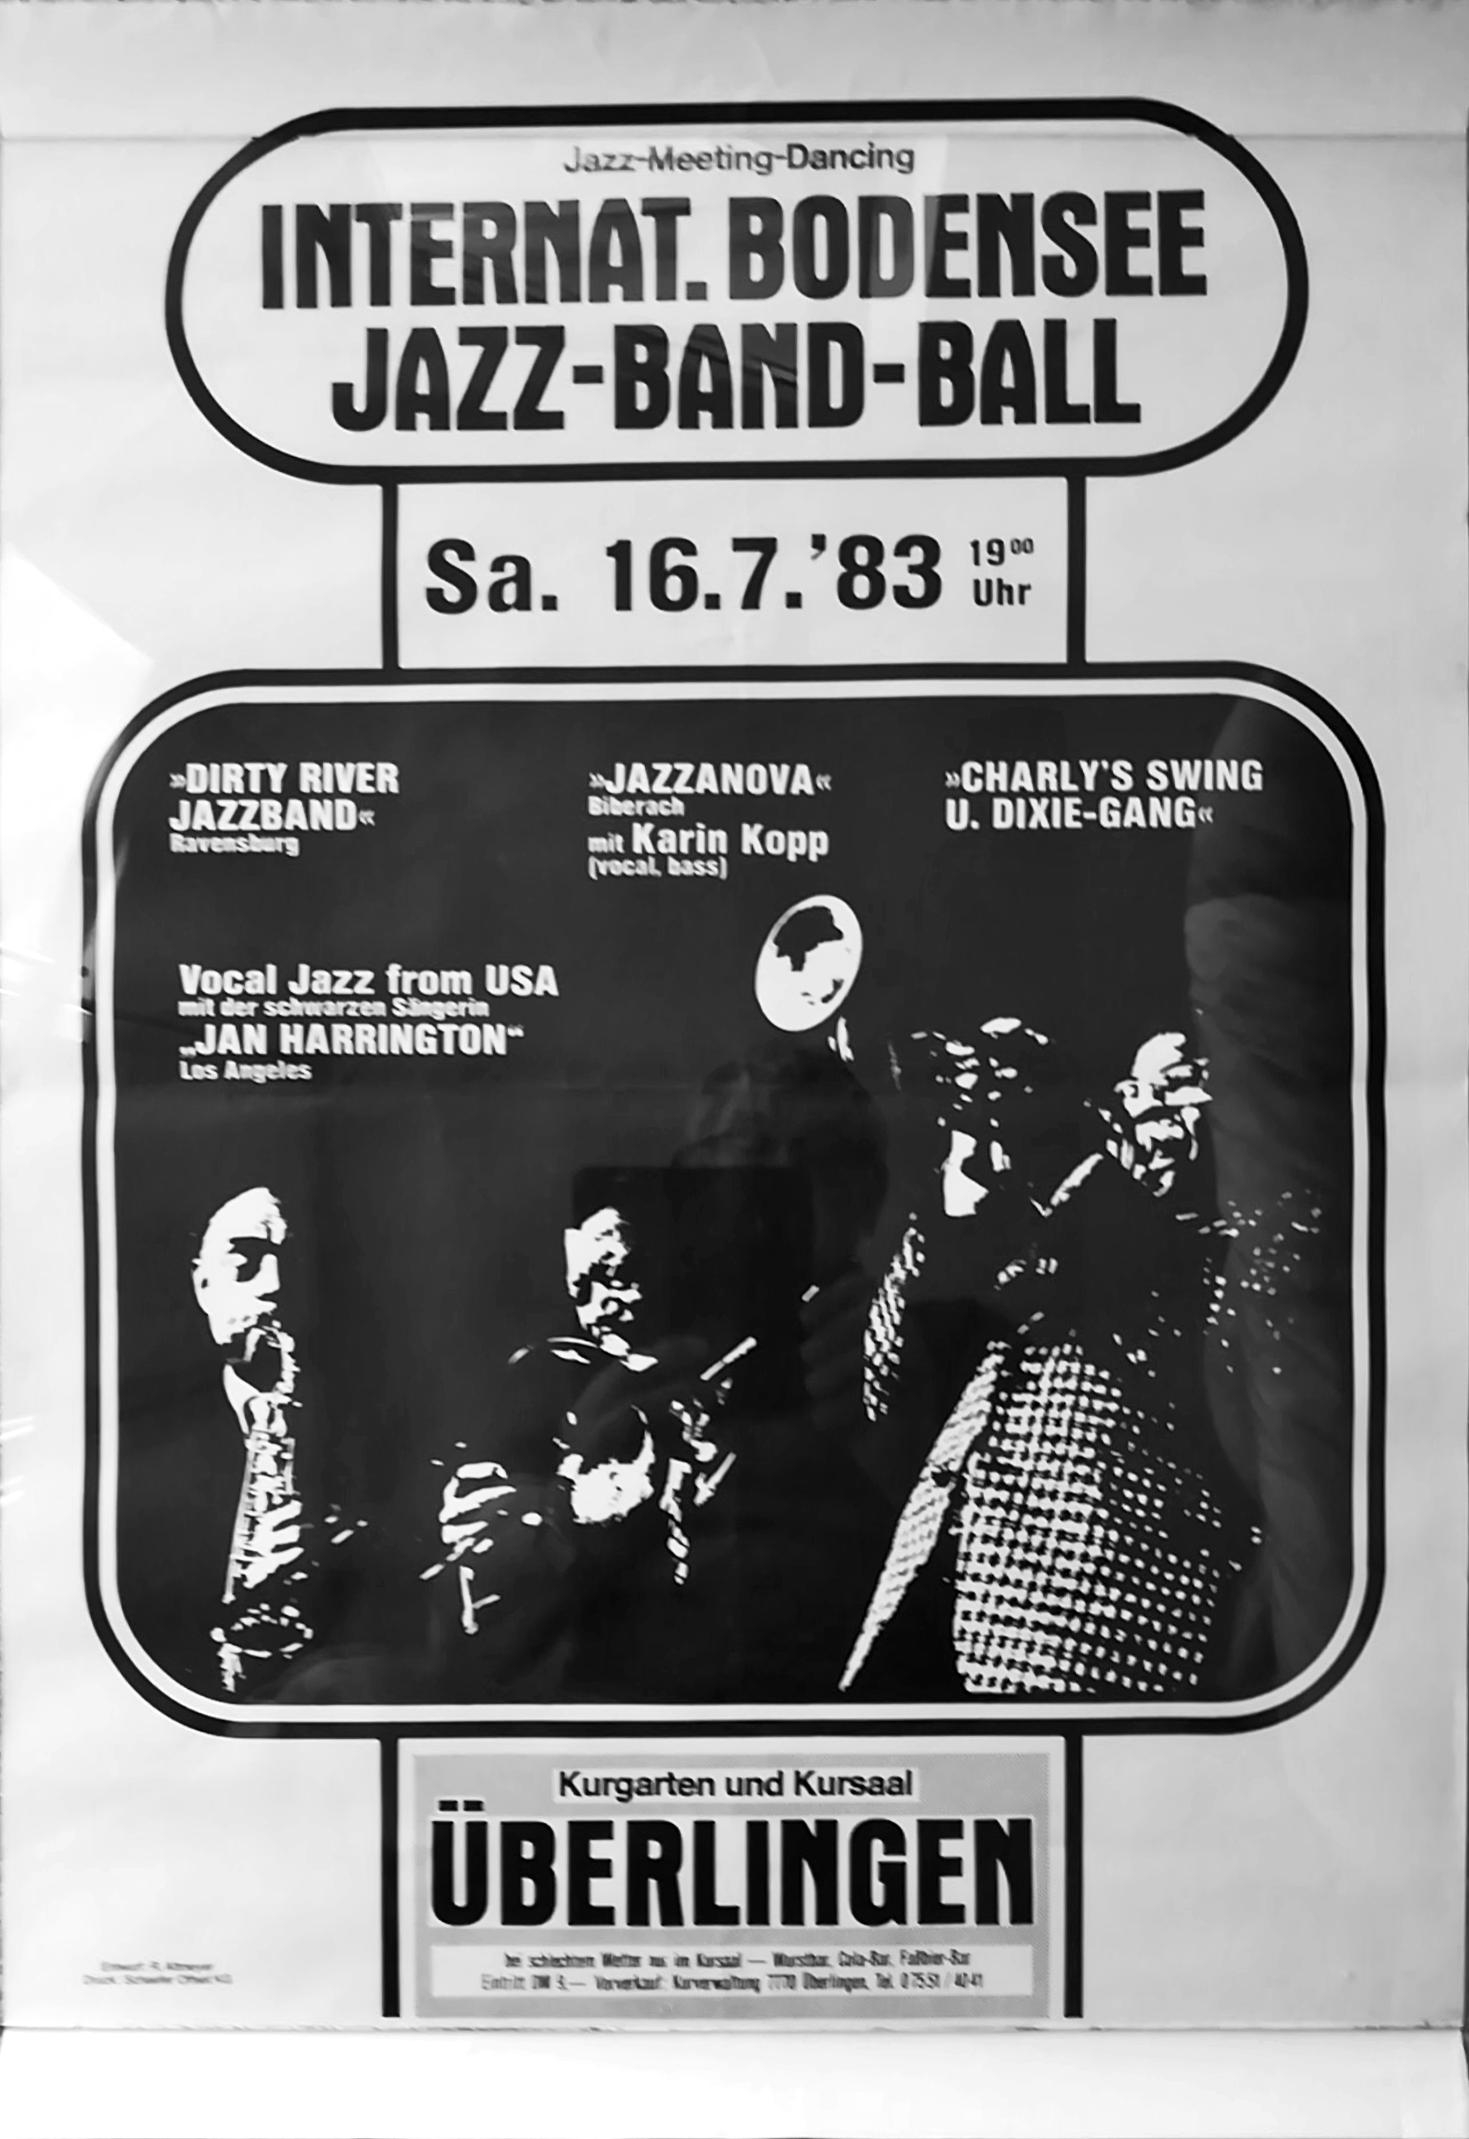 Int. Bodensee Jazz-Band-Ball